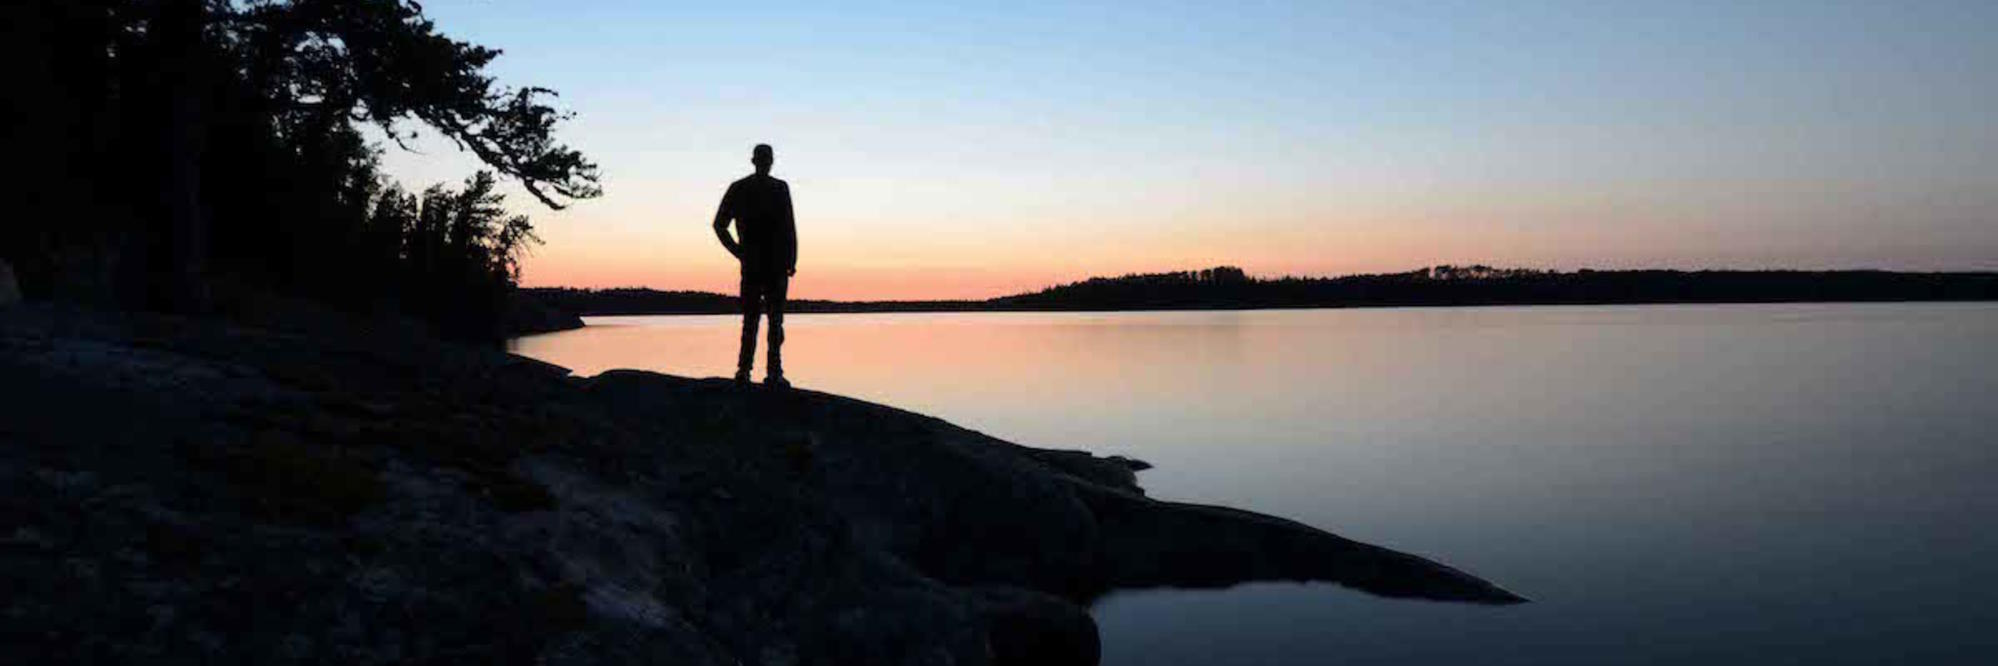 Sillouette of a man standing on rocky shoreline of lake at sunset